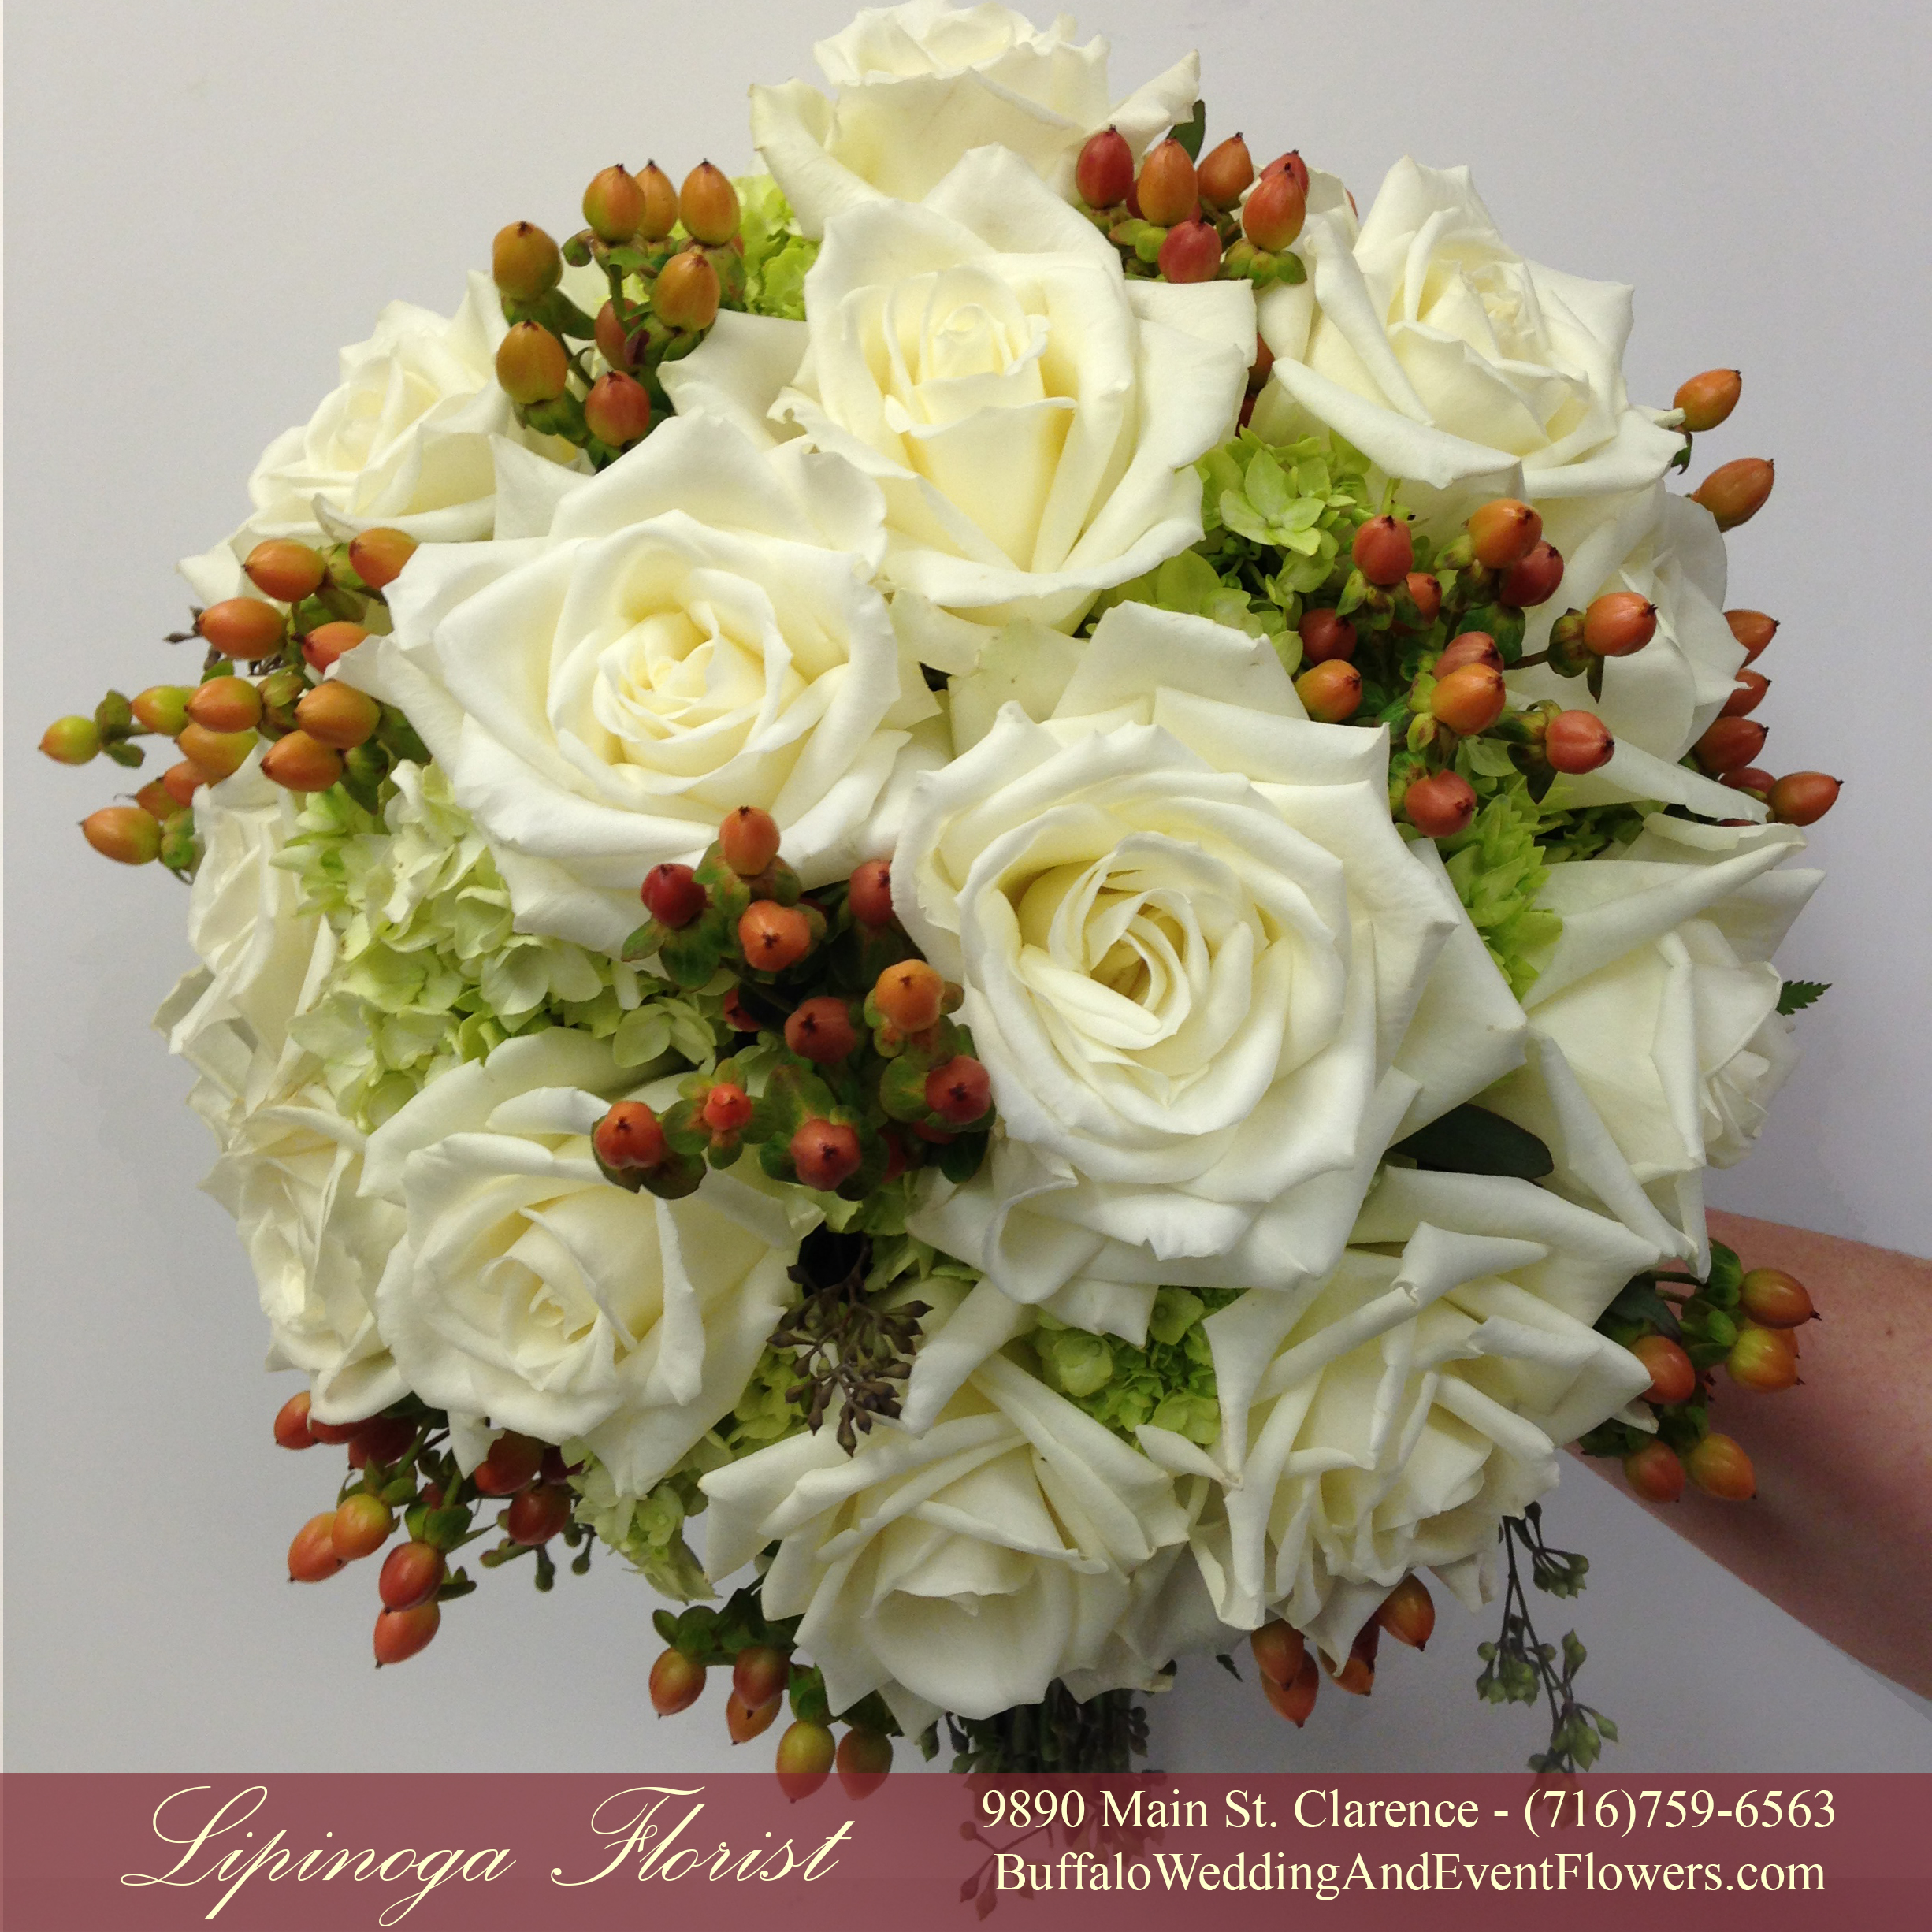 Buffalo Wedding Flowers Buffalo Wedding Event Flowers By